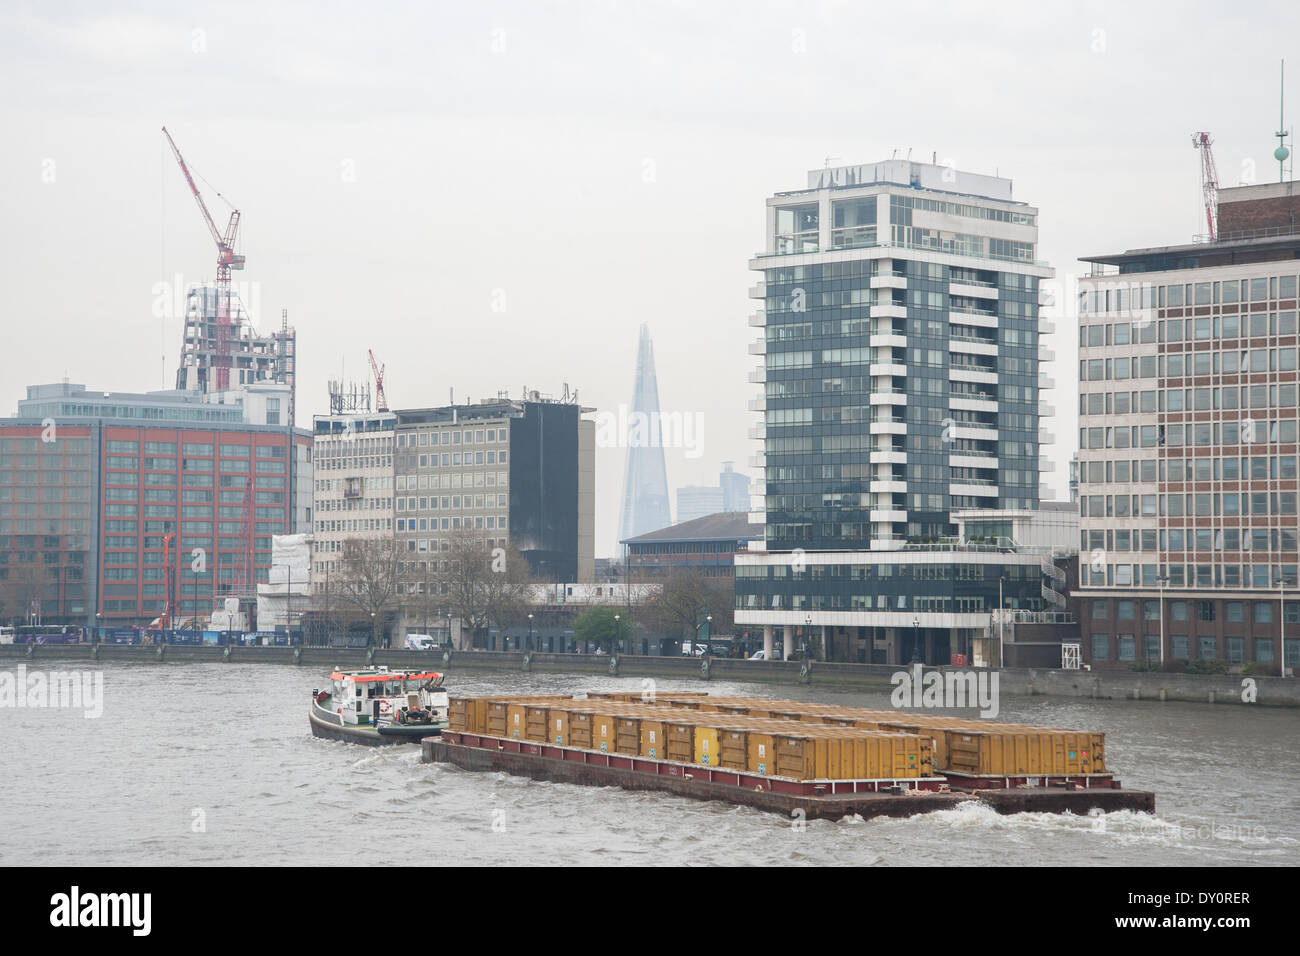 London, UK. 2nd April 2014. . View from Vauxhall Bridge of the Shard shrouded in smog. Credit:  Pete Maclaine/Alamy Stock Photo